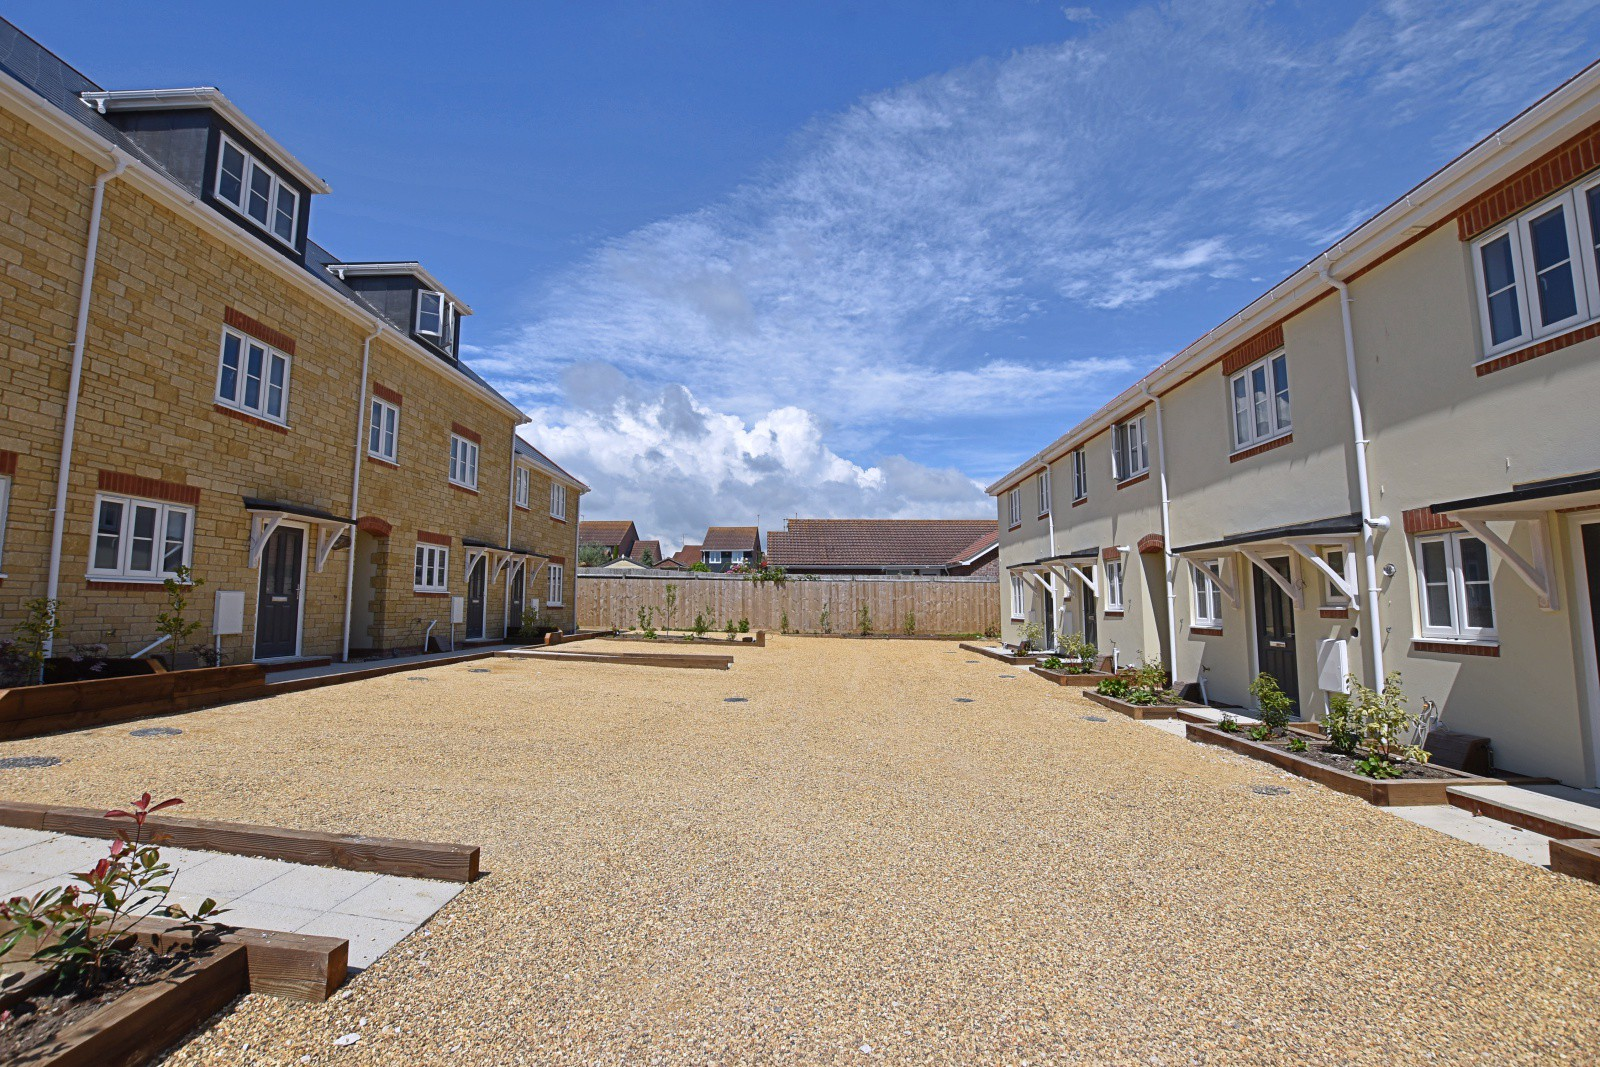 Plot 2, Daylesford, Weymouth